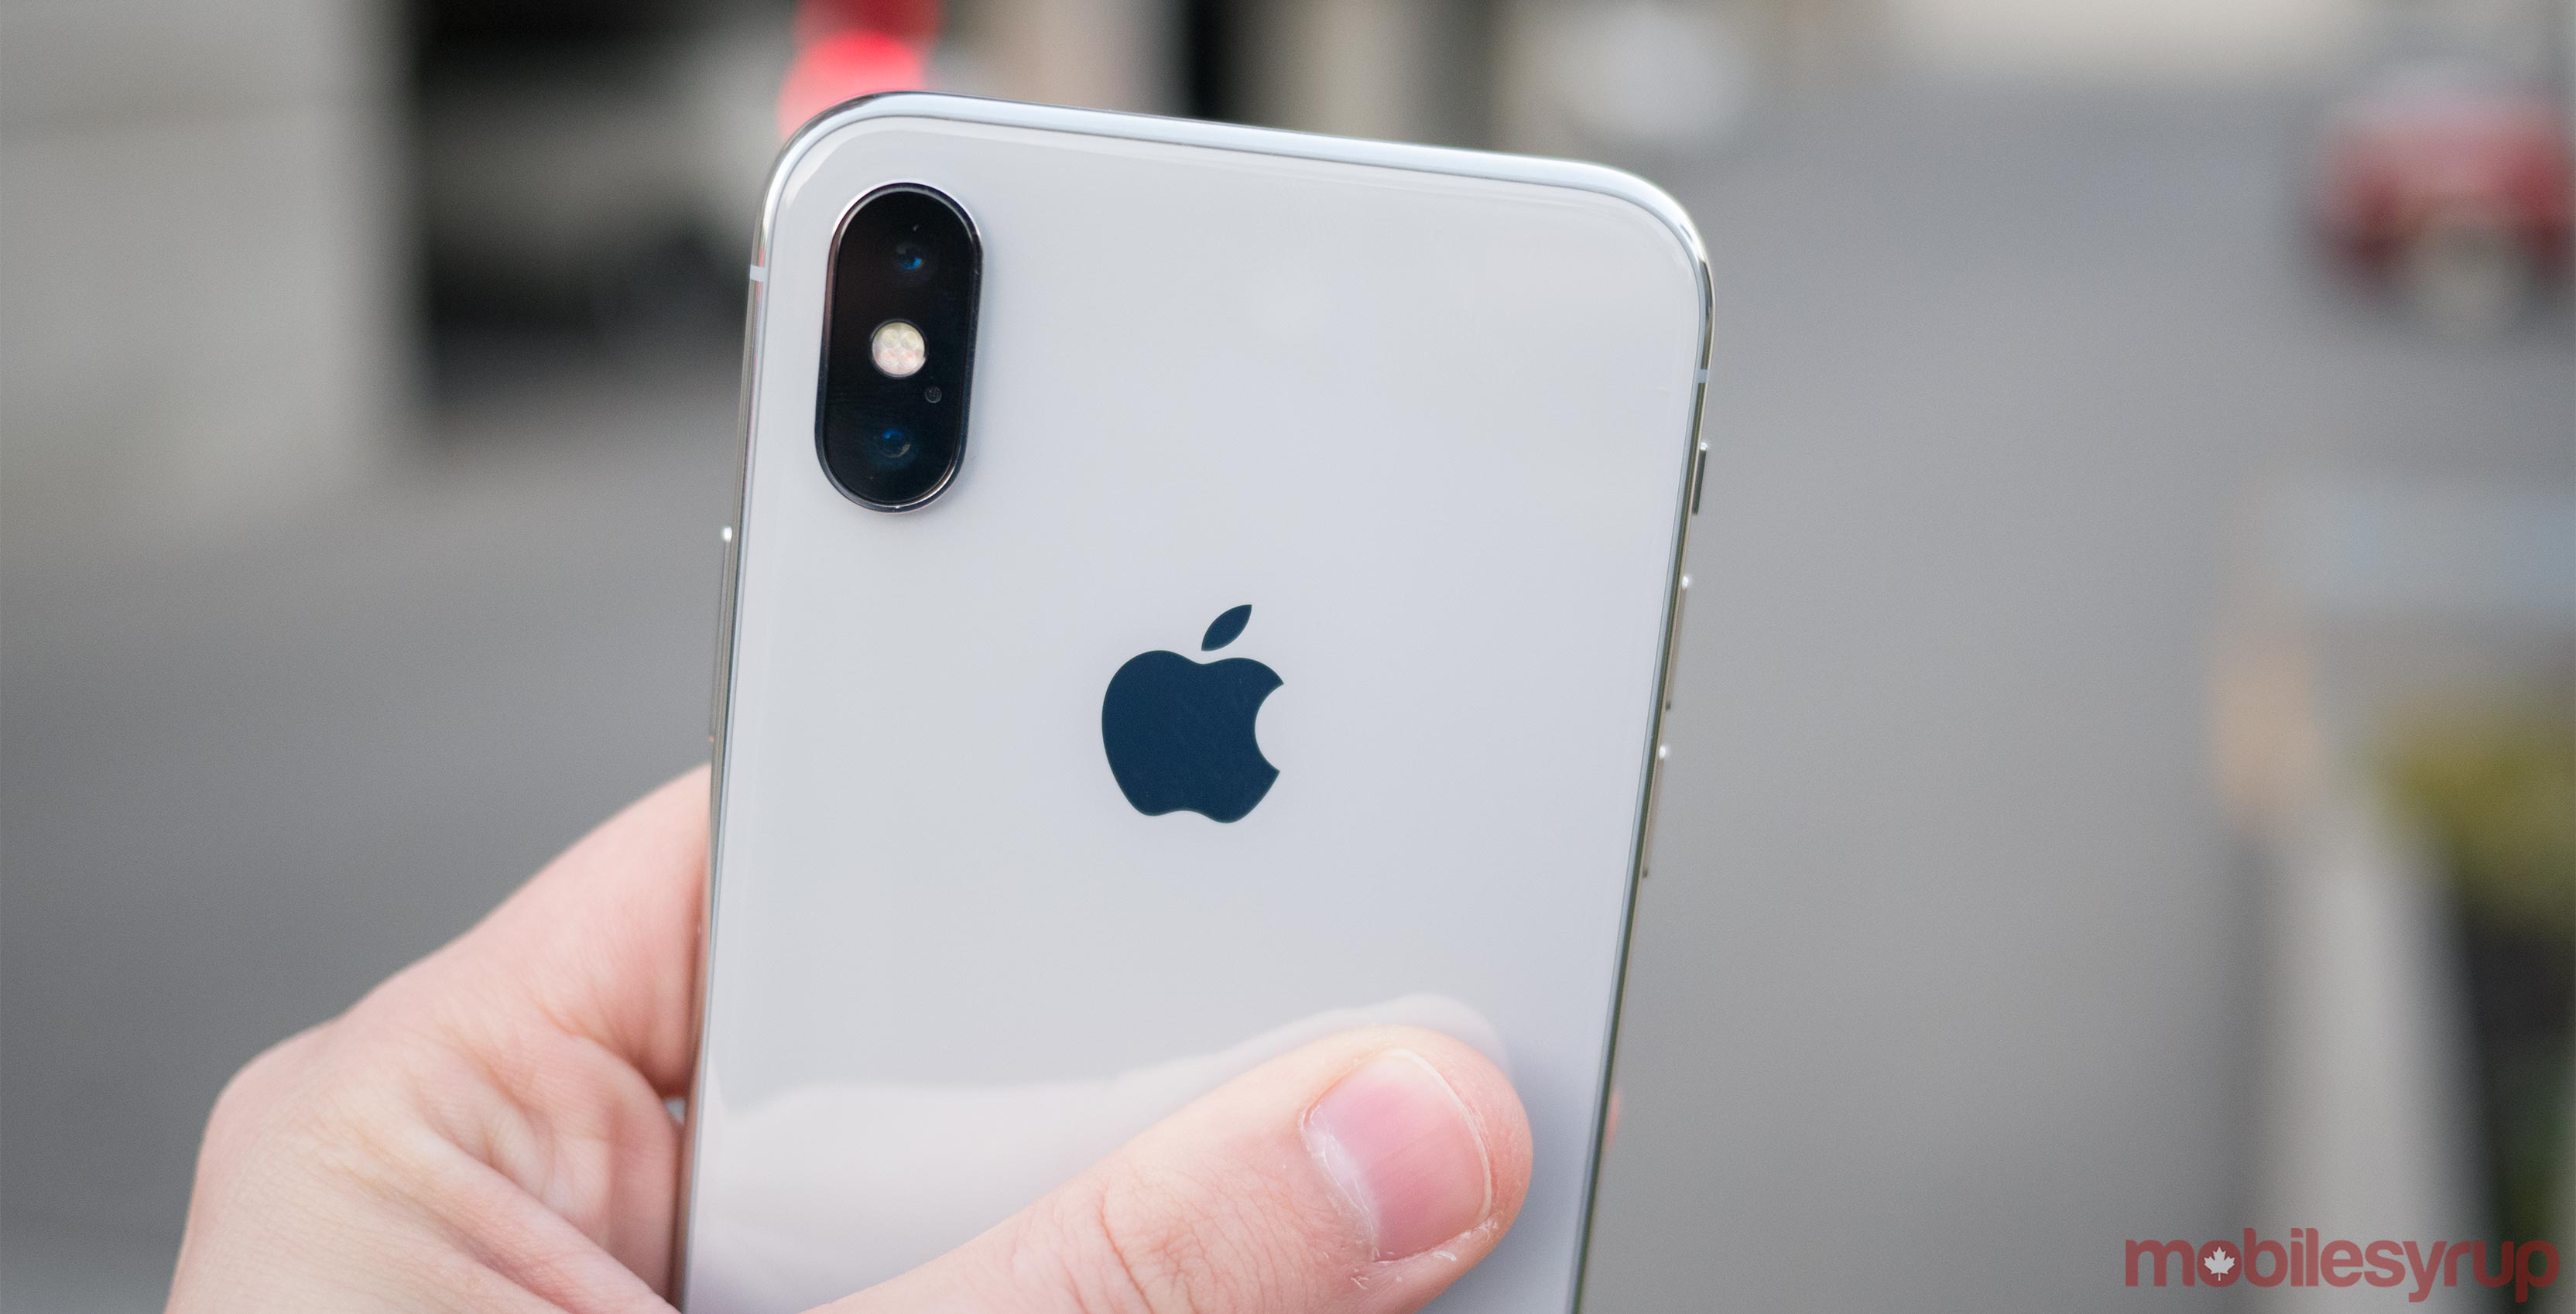 Rear of iPhone X